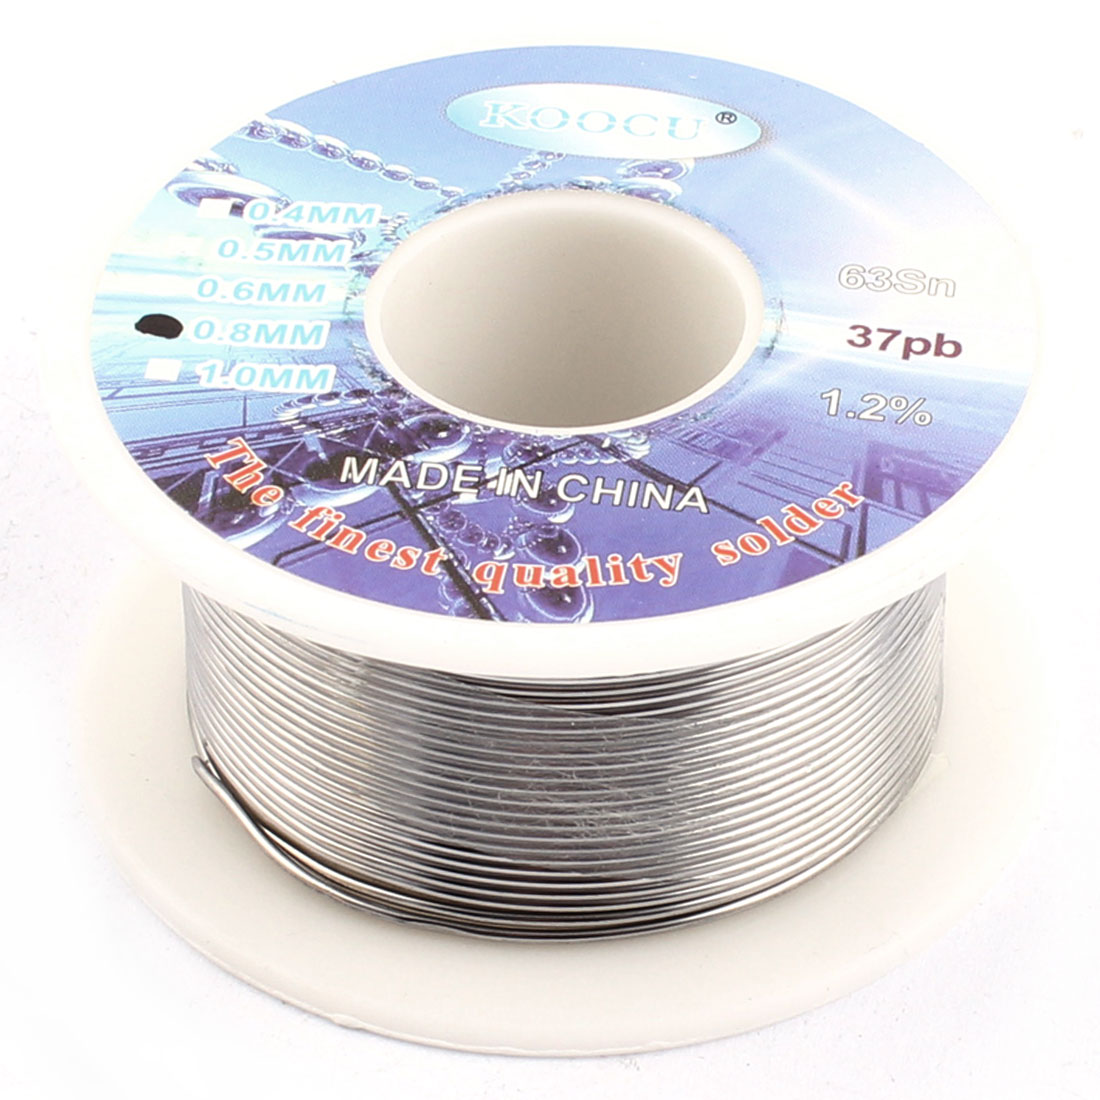 0.8mm Dia 63/37 Tin Lead Welding Soldering Solder Wire Rosin Core Reel